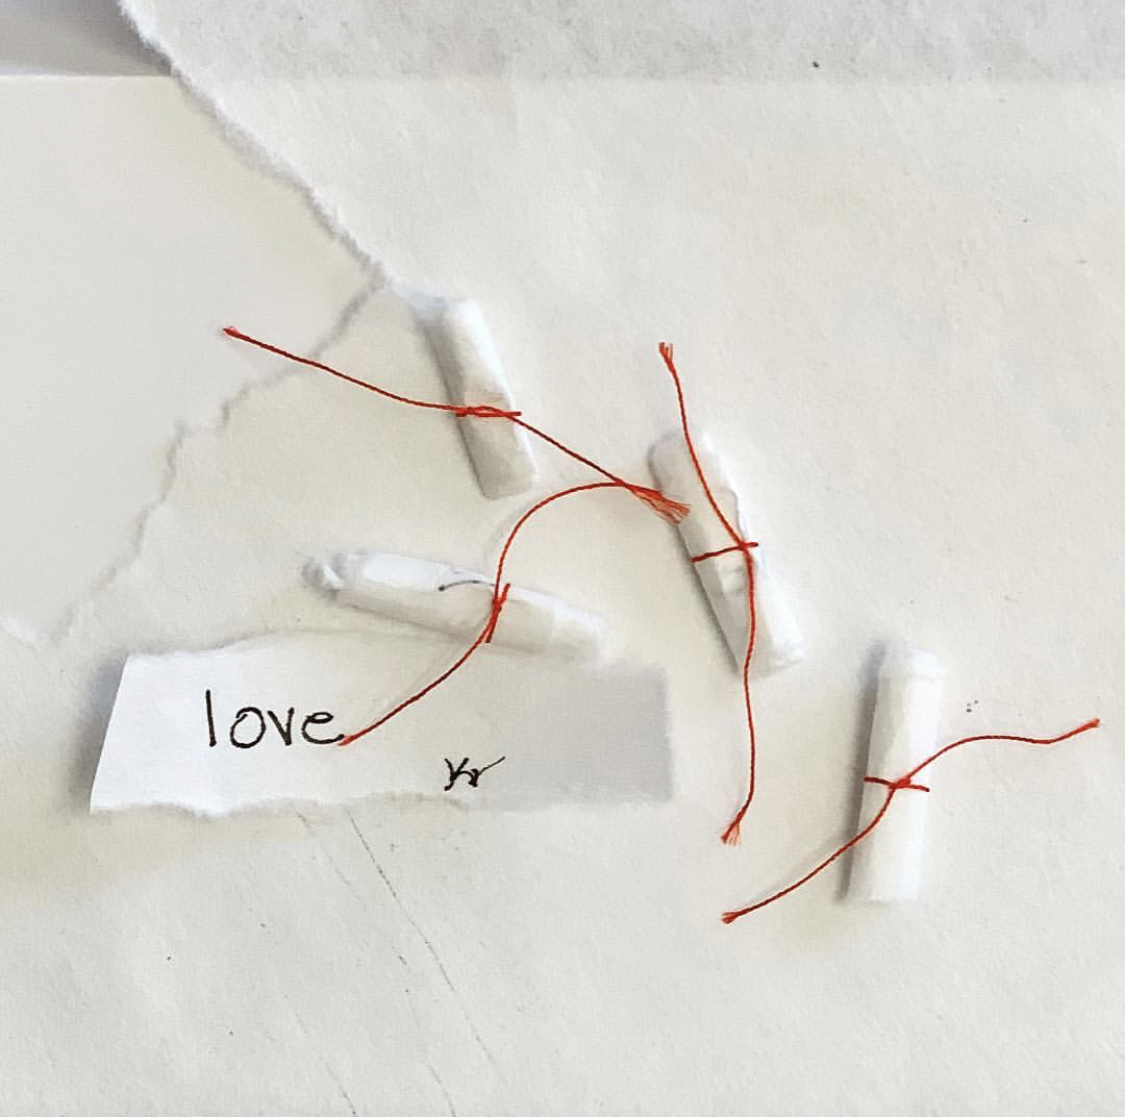 Love Notes - I place a tiny talisman within each inter-layer to imbue these works with the most powerful force on Earth.